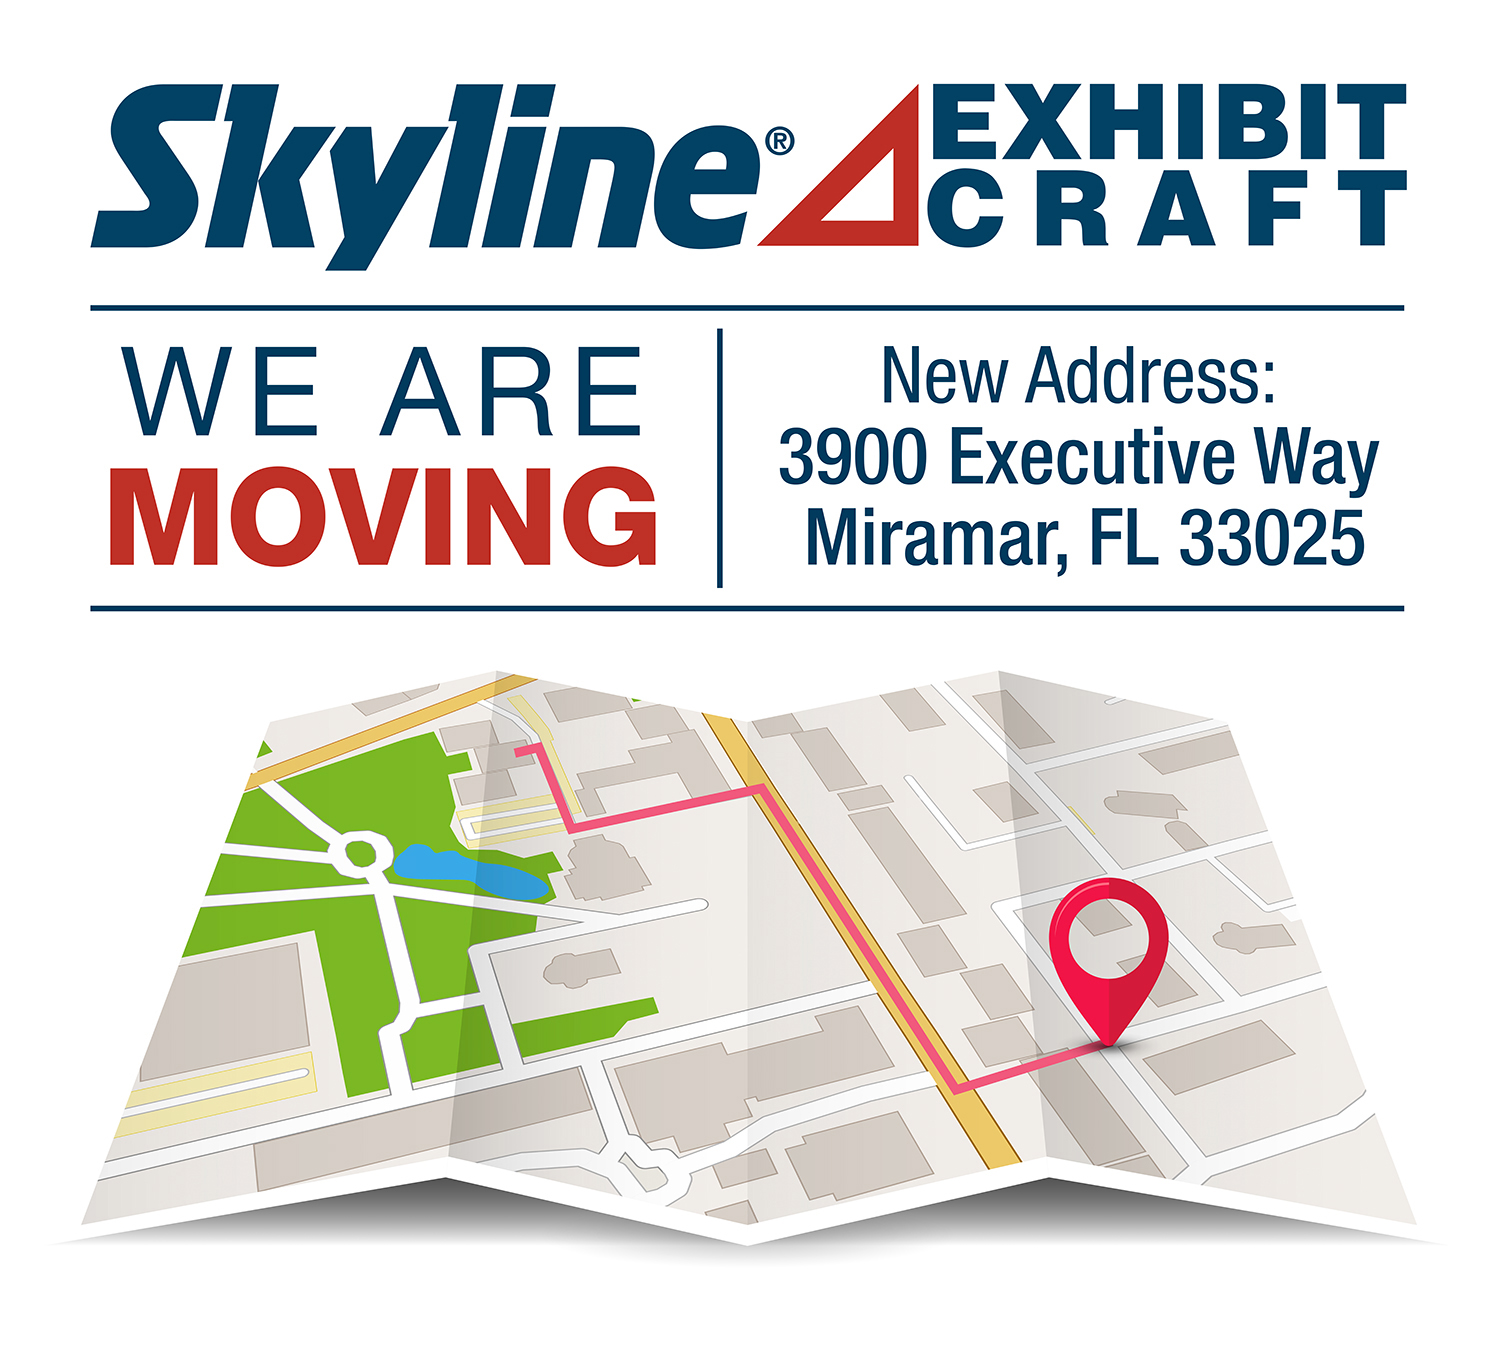 Map to Skyline Exhibit Craft | South Florida & The Caribbean